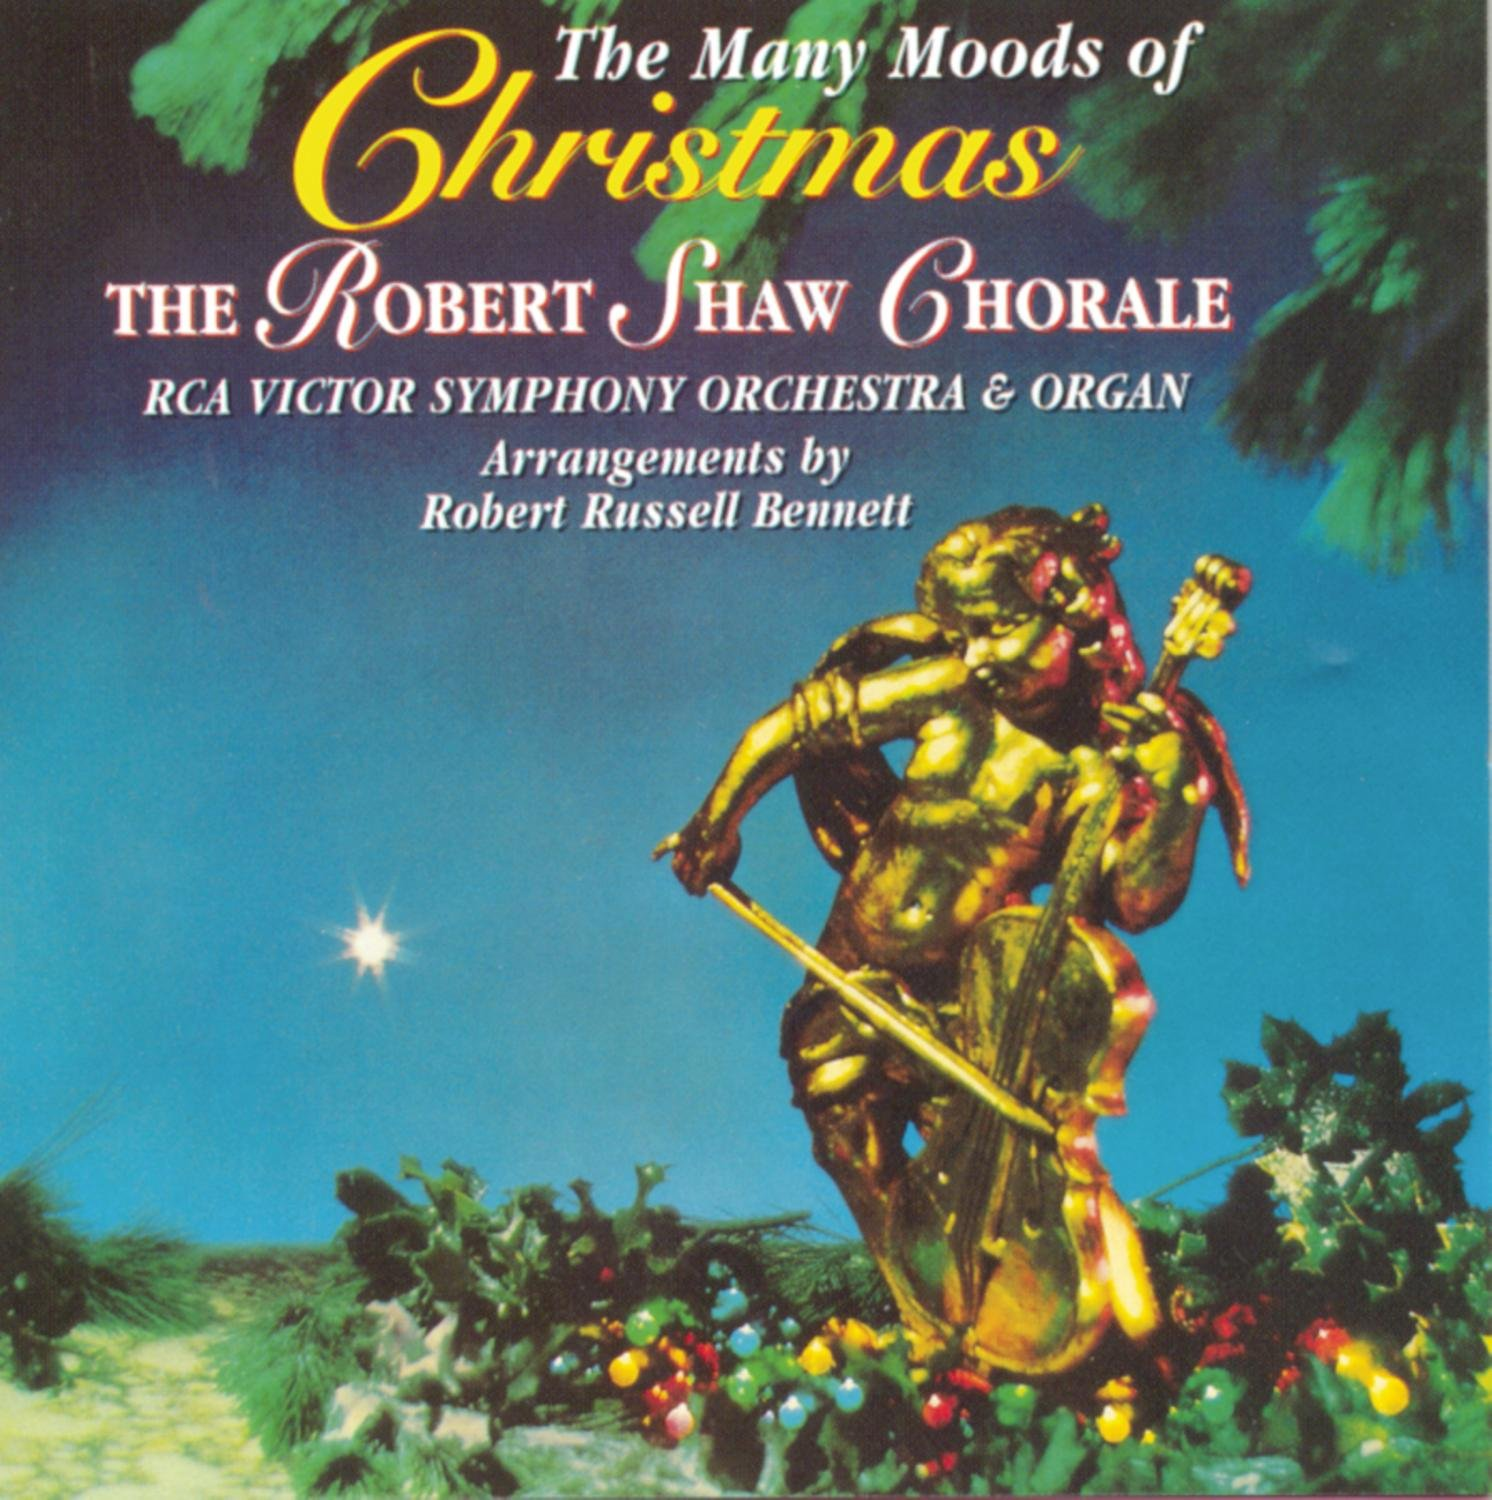 The Many Moods of Christmas (1963 RCA Victor Version) Robert Shaw Chorale and Orchestra by SHAW,ROBERT CHORALE